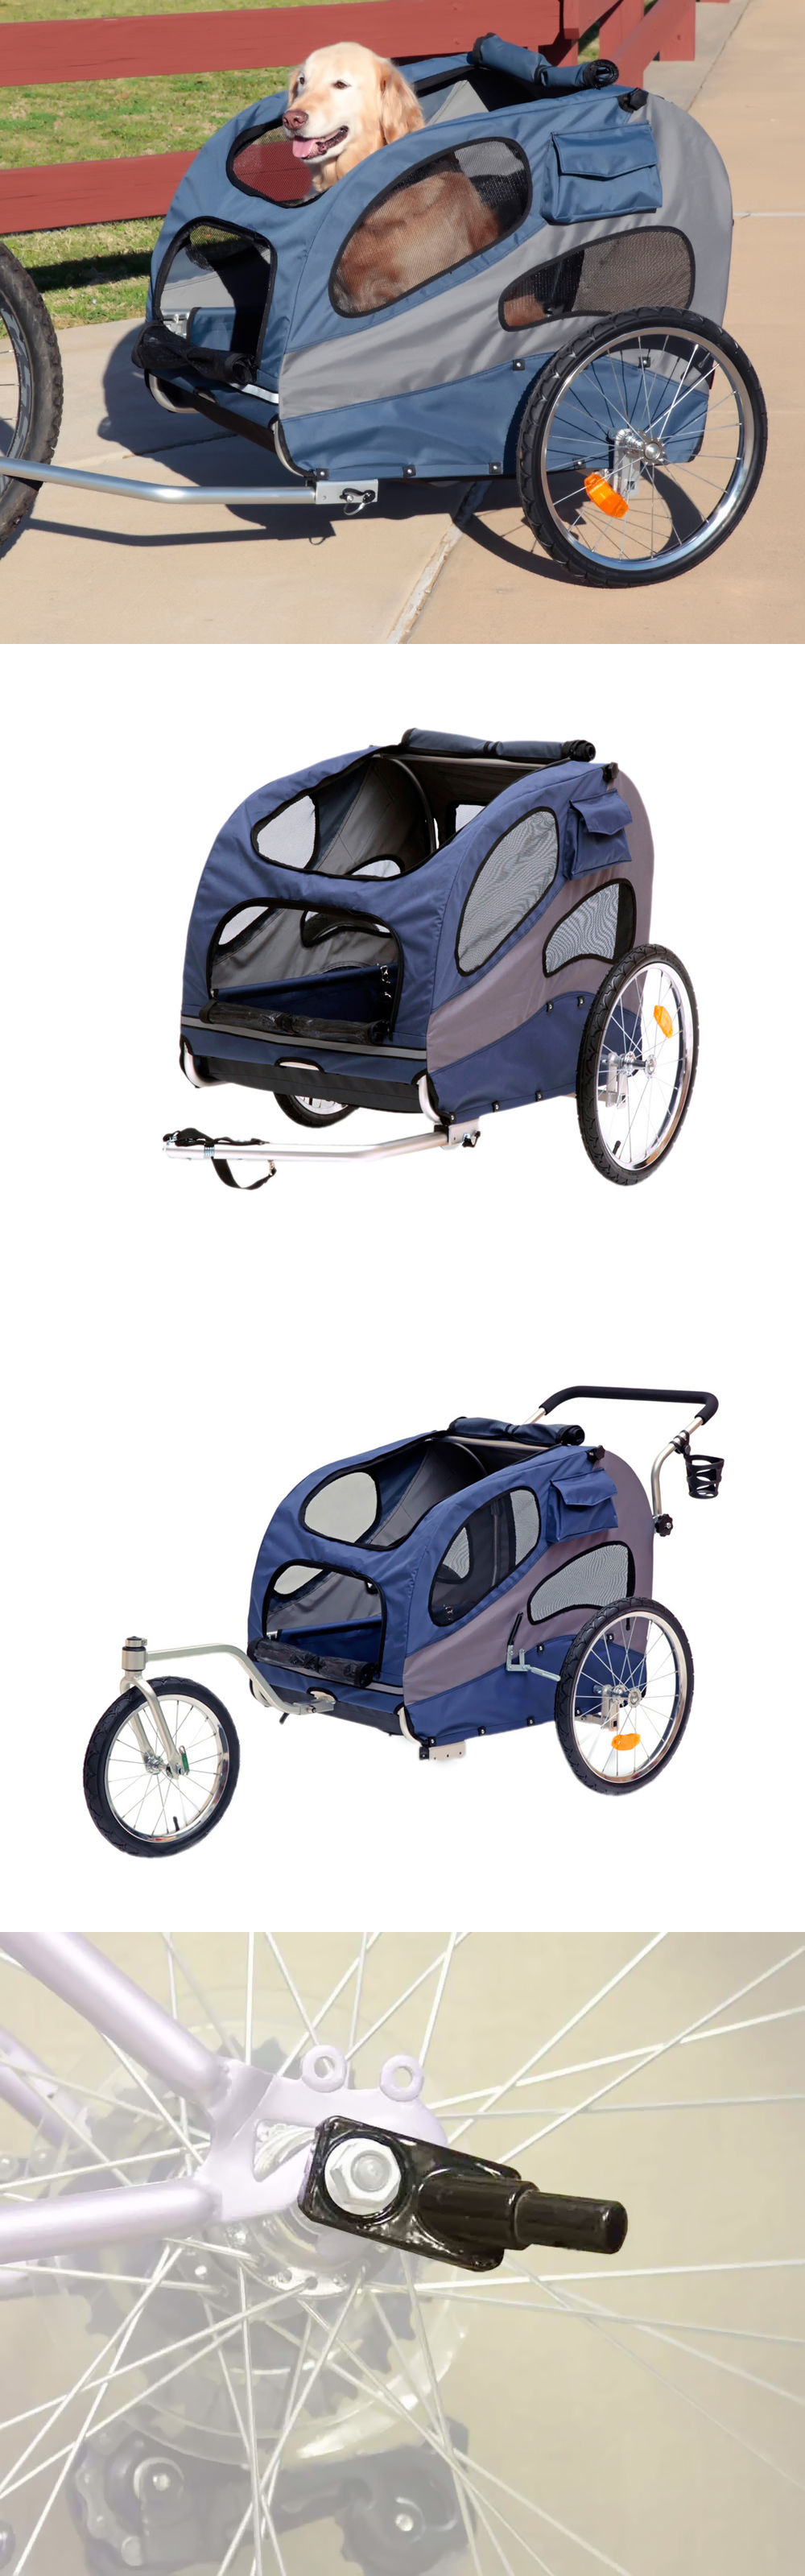 Bike baskets and trailers bicyle trailer pet tow behind blue